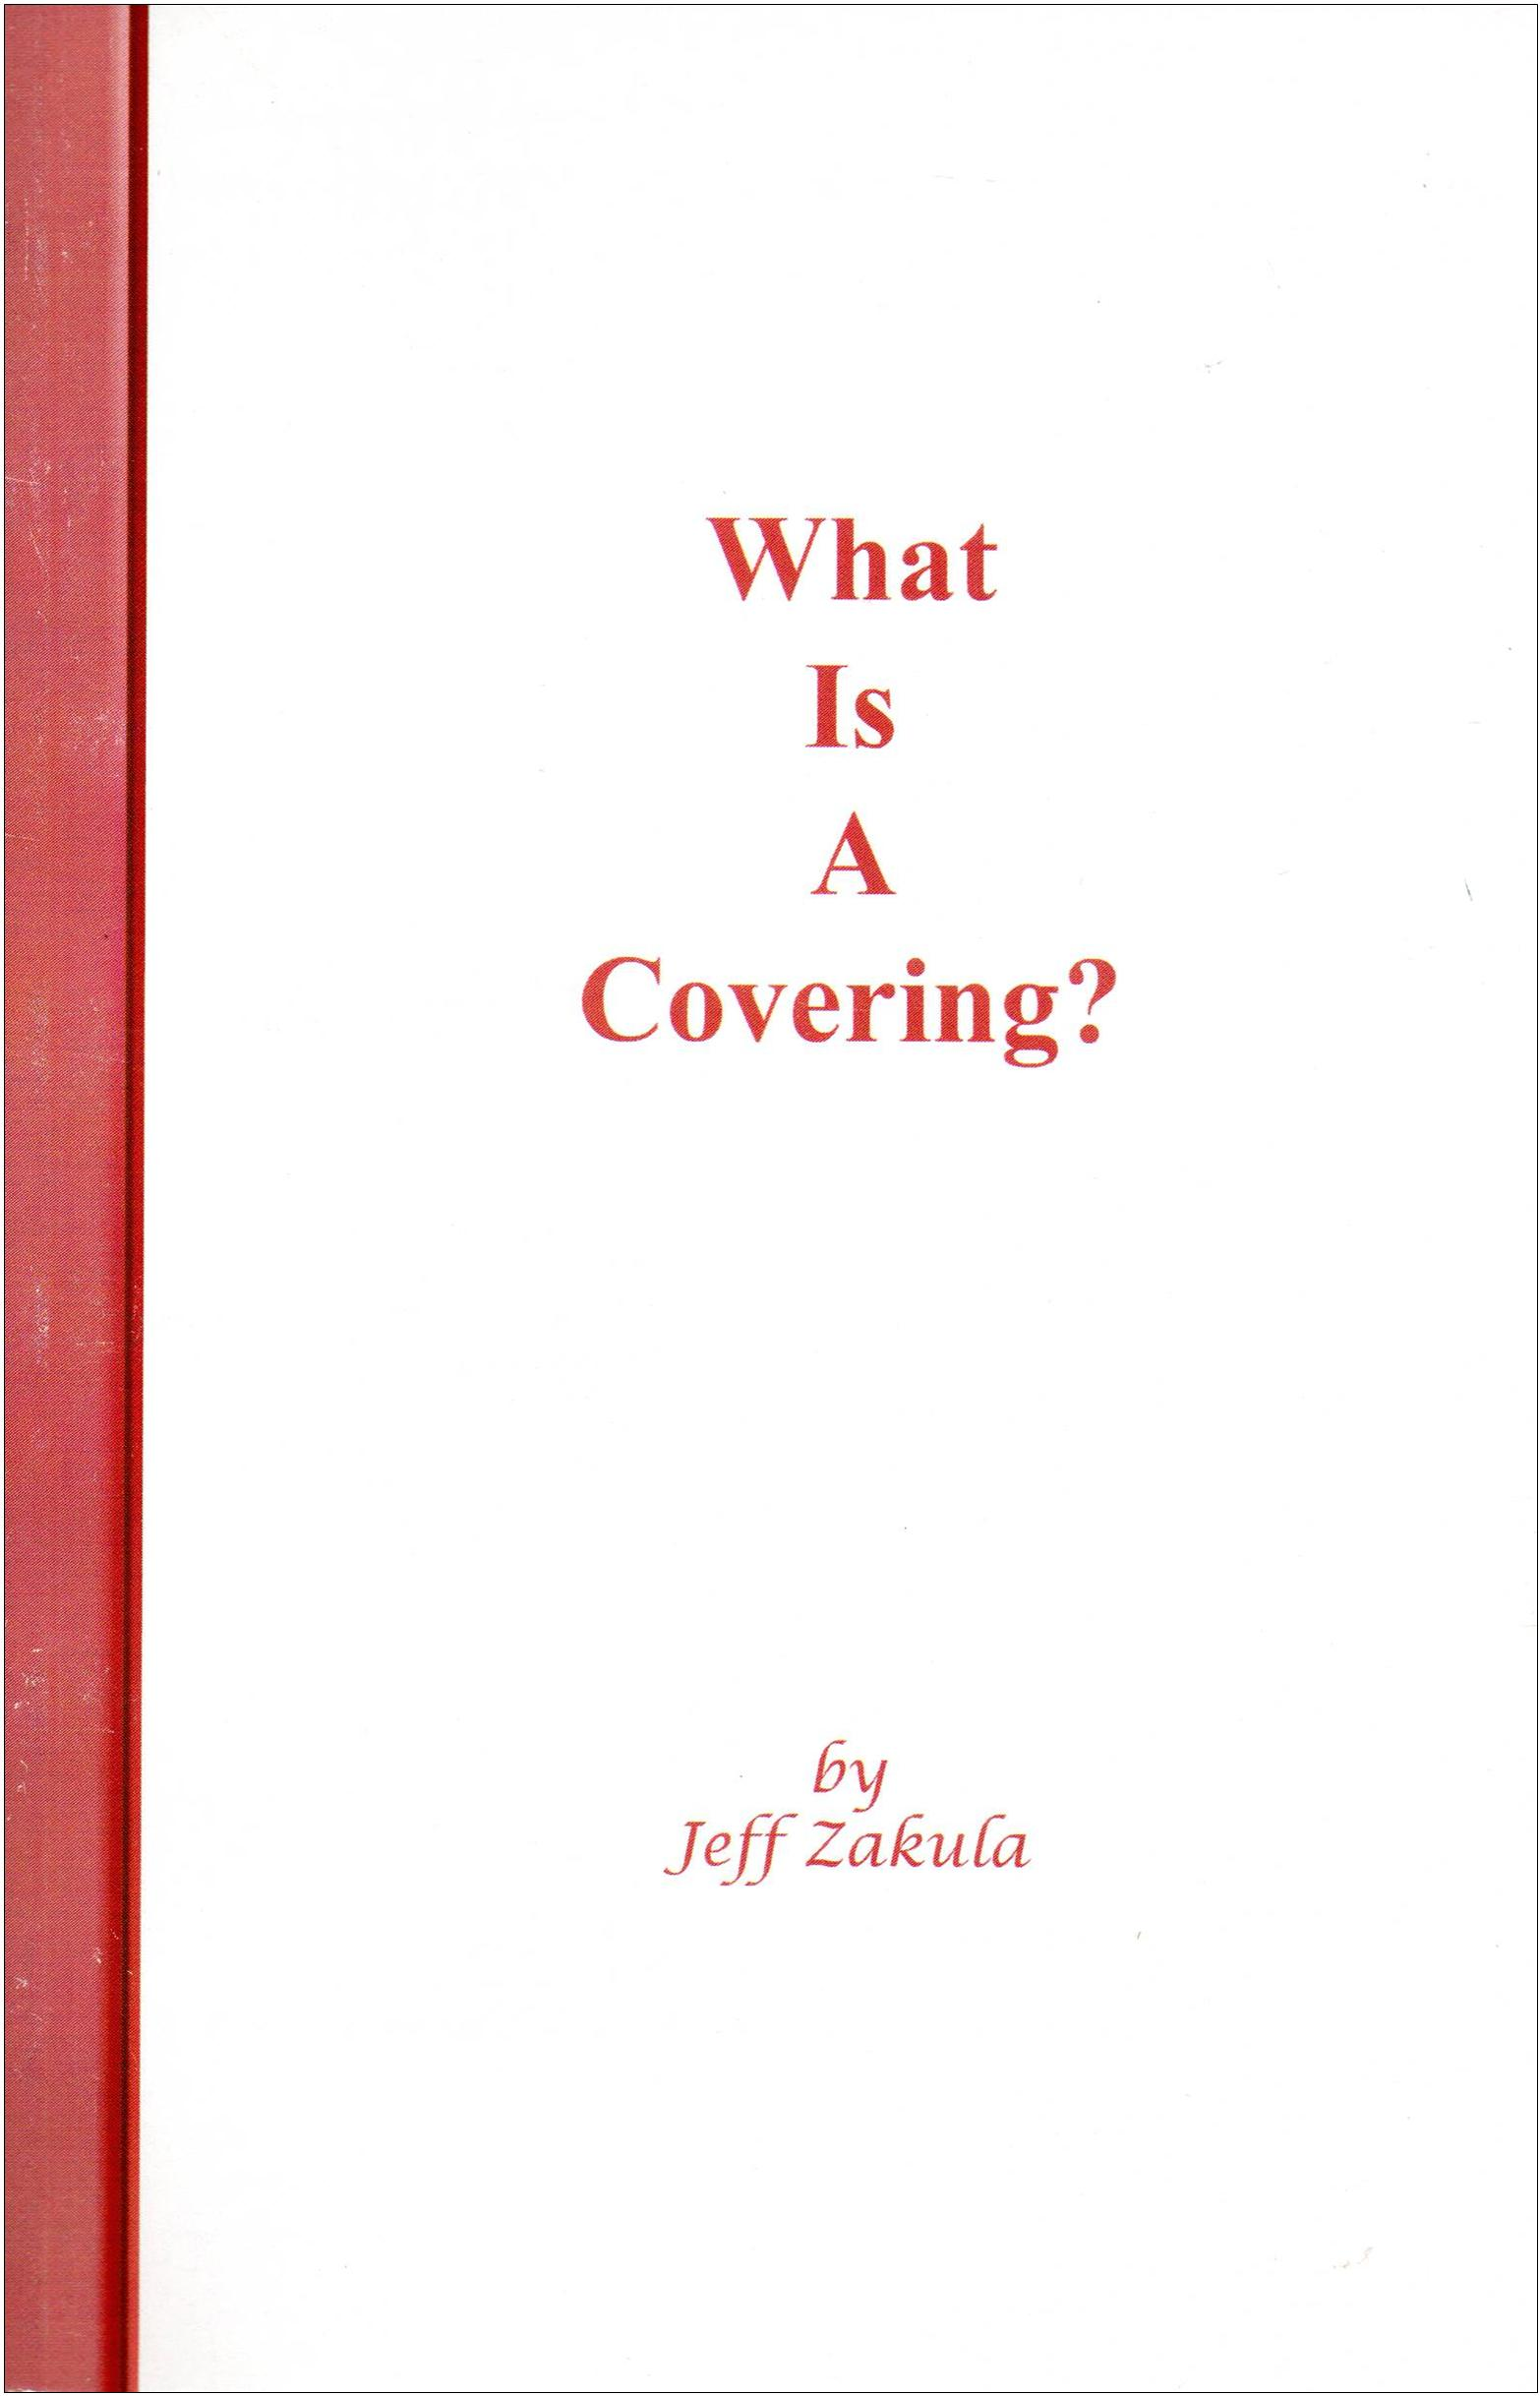 What is a Covering? NEW!!! - ONLY 2 LEFT